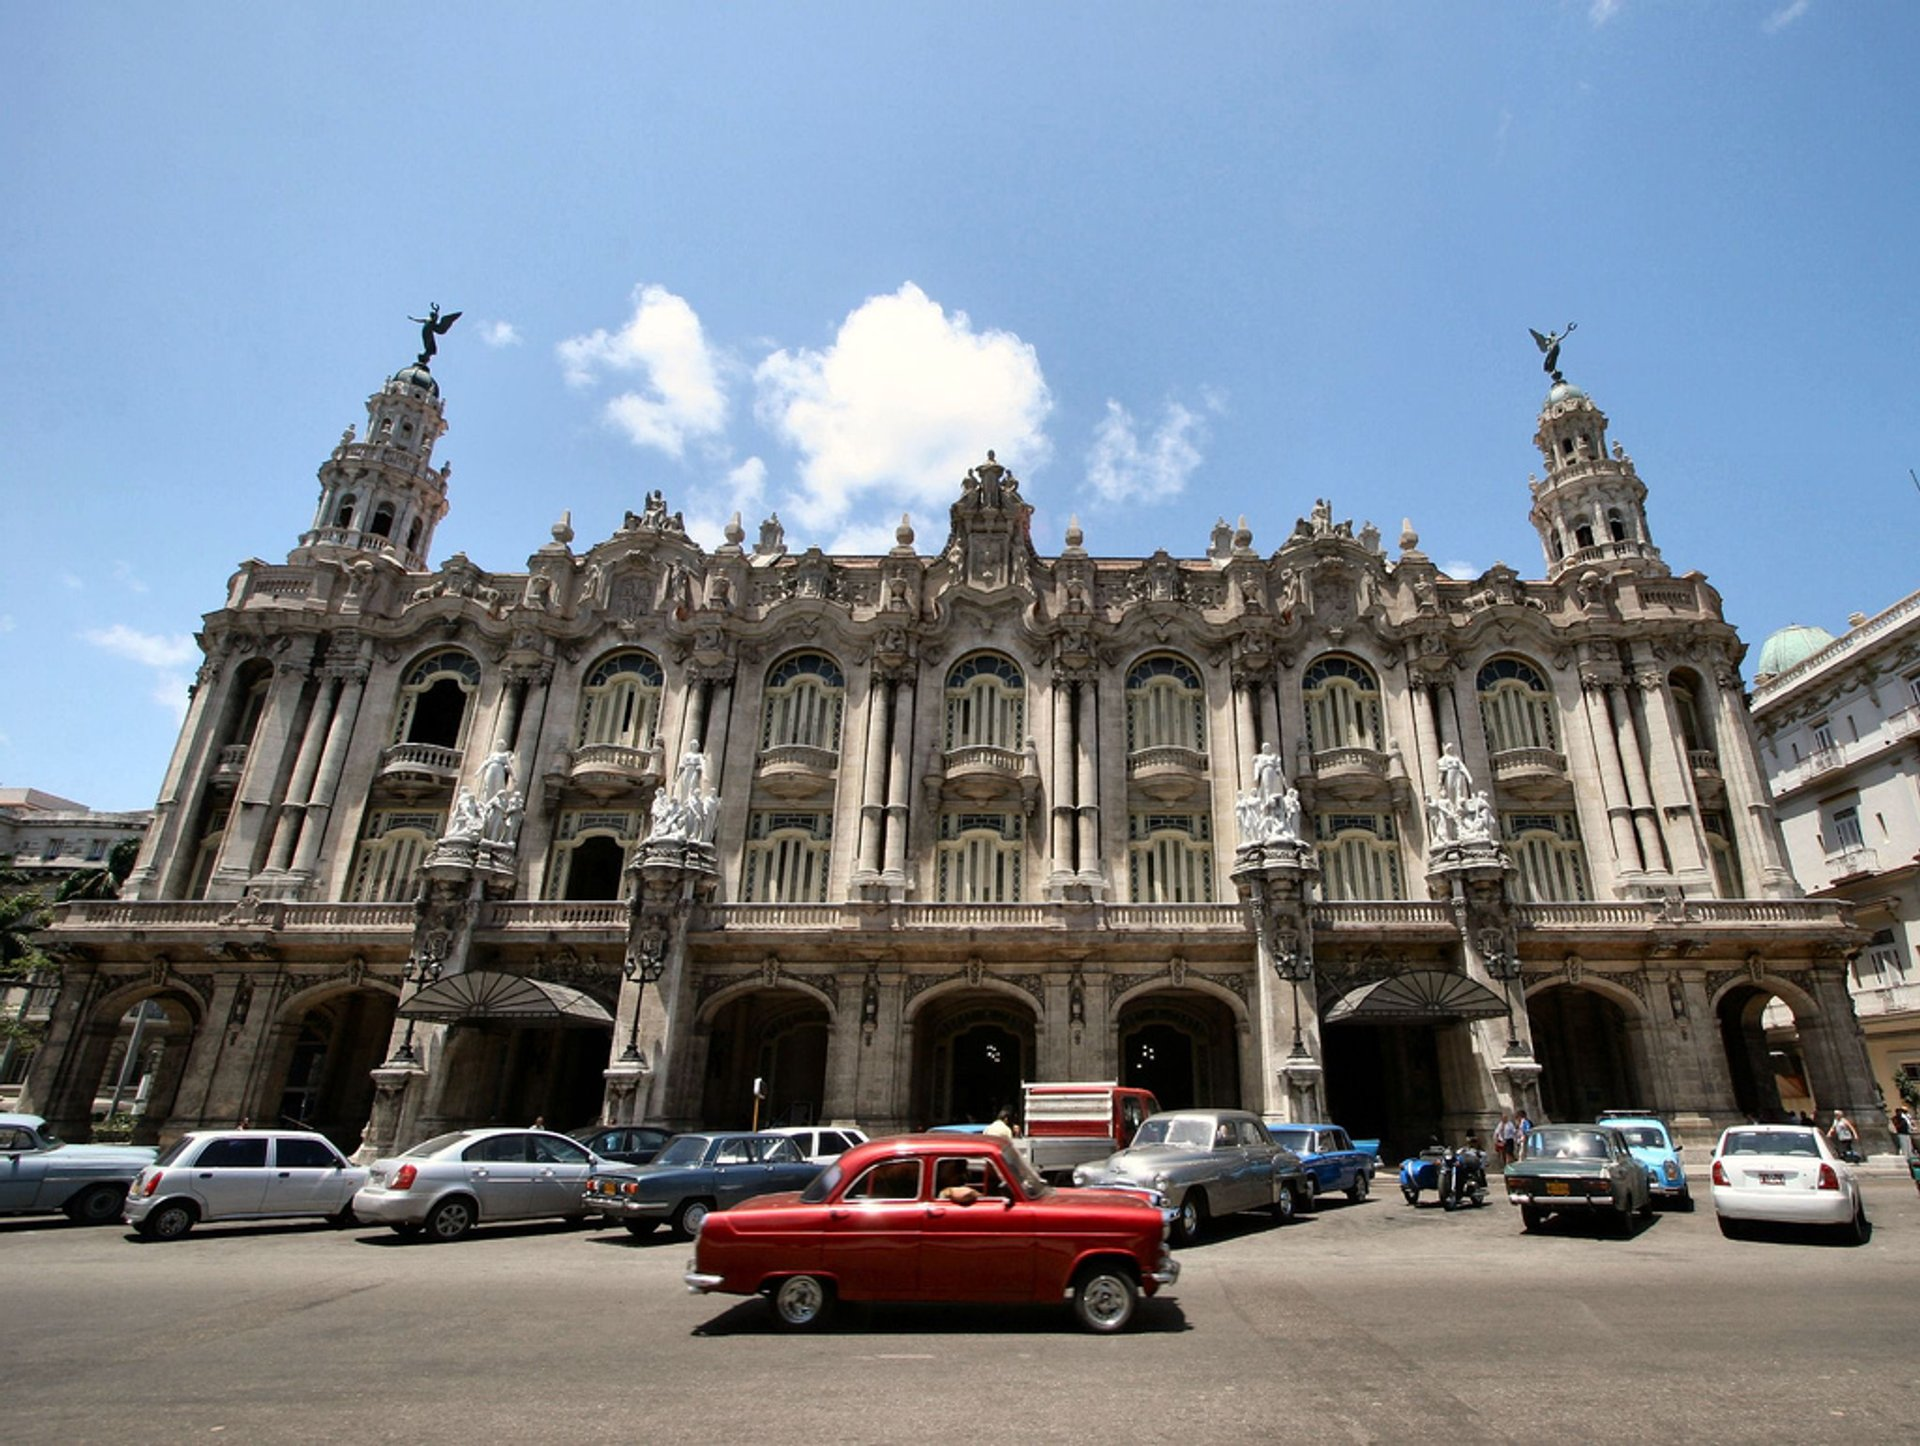 The Great Theatre of Havana (Gran Teatro de La Habana) 2020